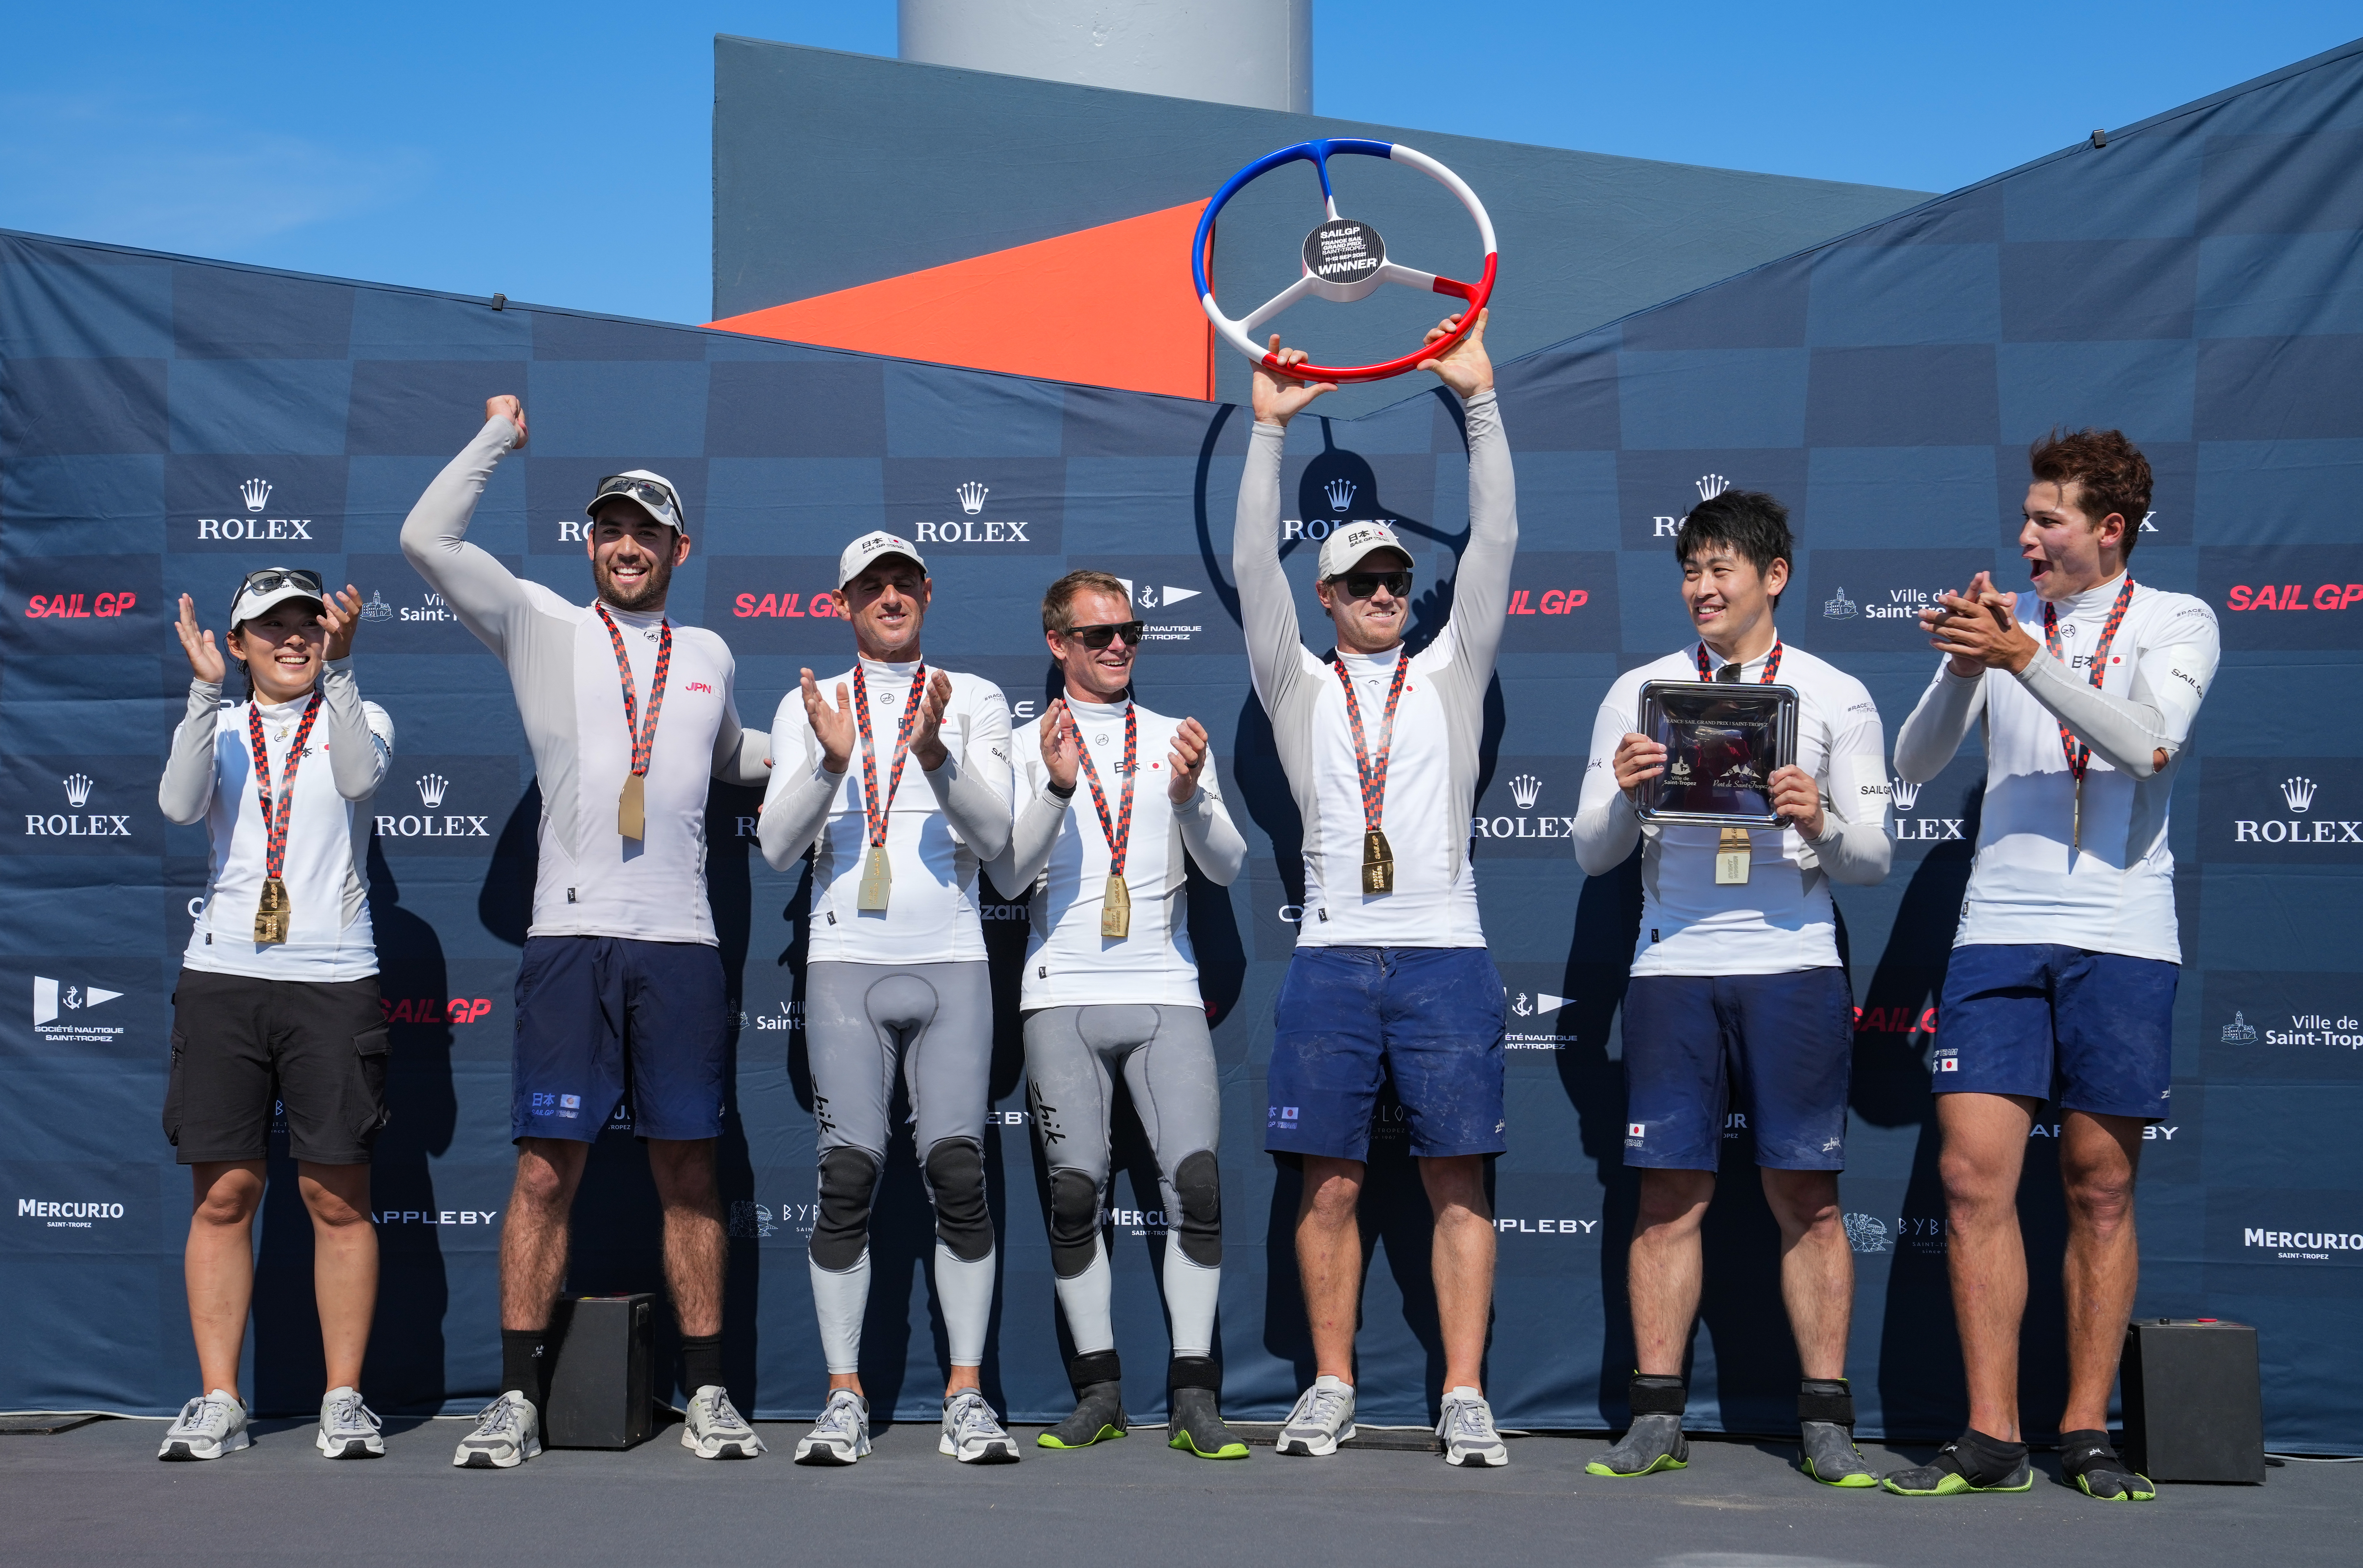 Team Japan on the stage with the steering wheel trophy.